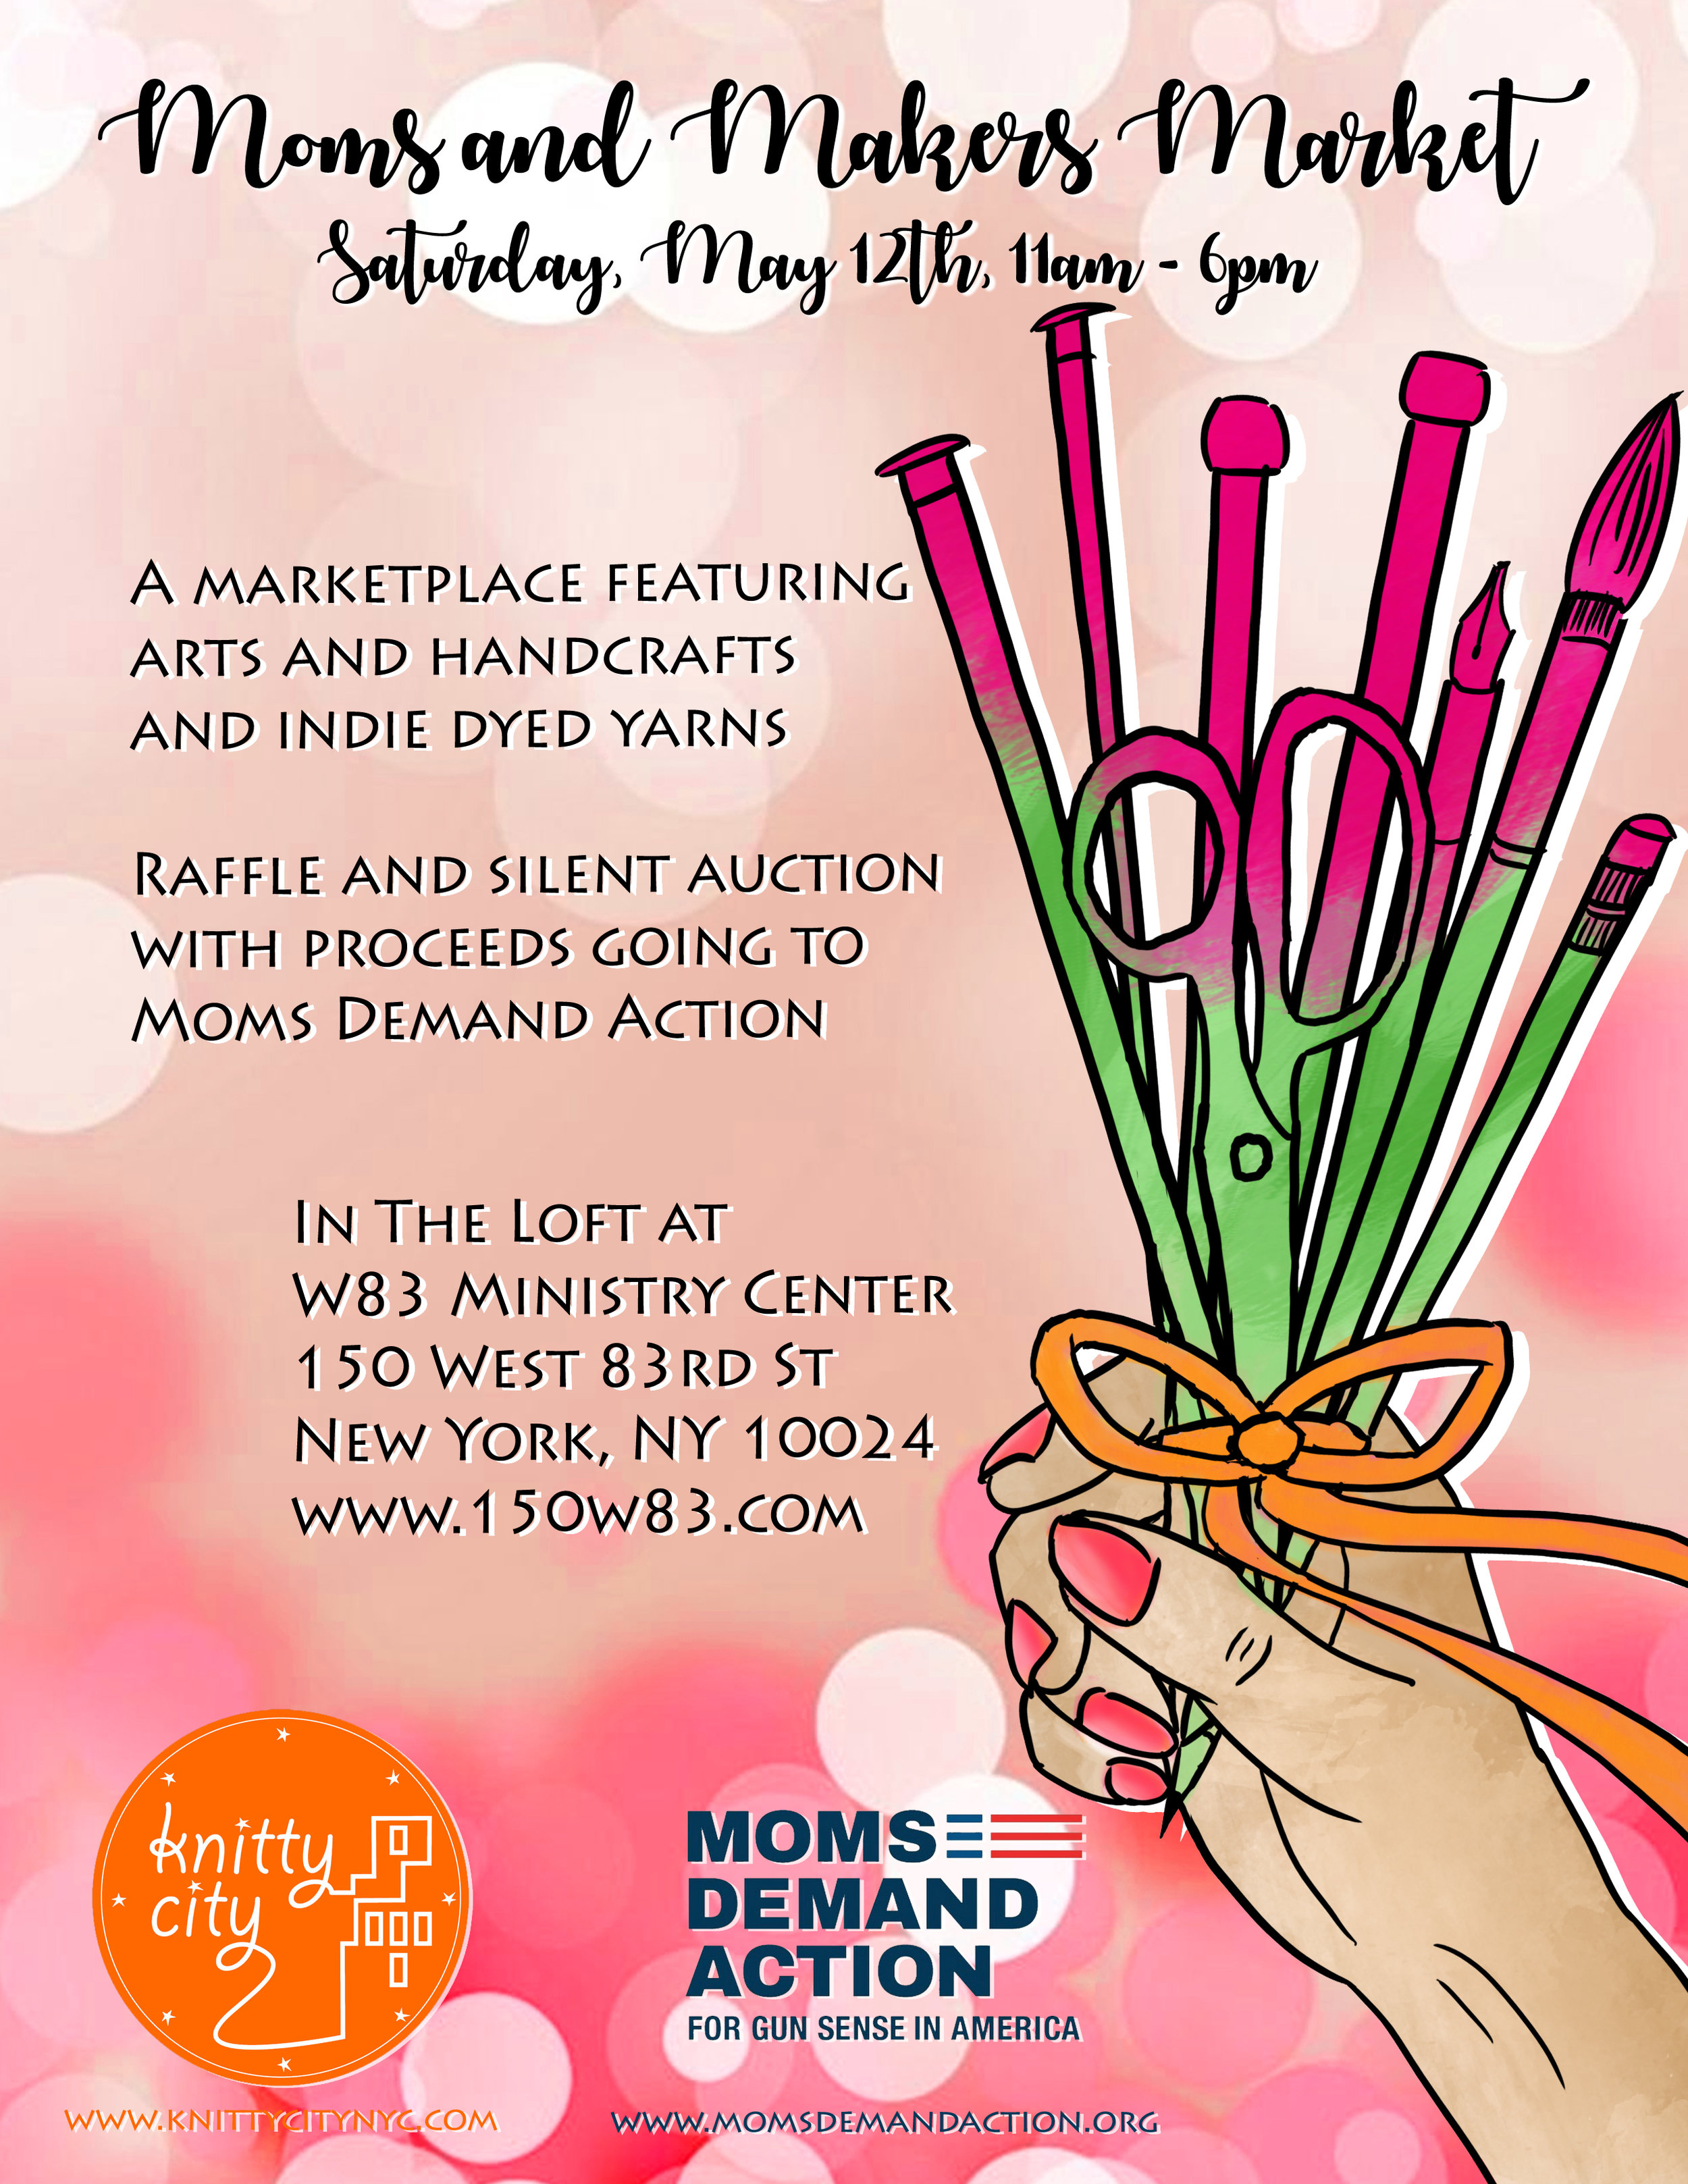 Moms and Makers Market2.jpg